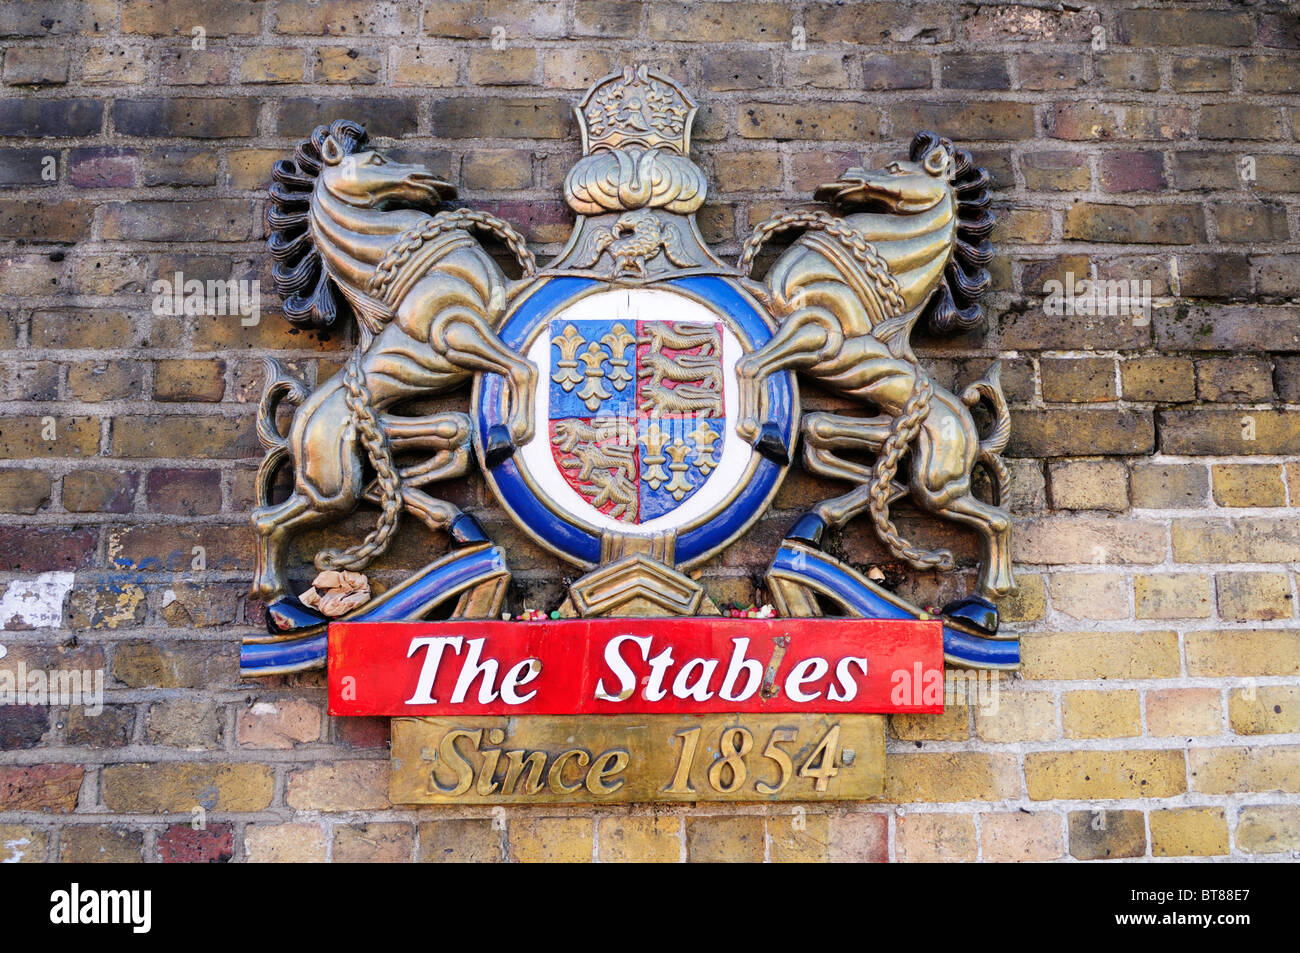 The Stables Since 1854 Camden Market sign, London, England, UK - Stock Image